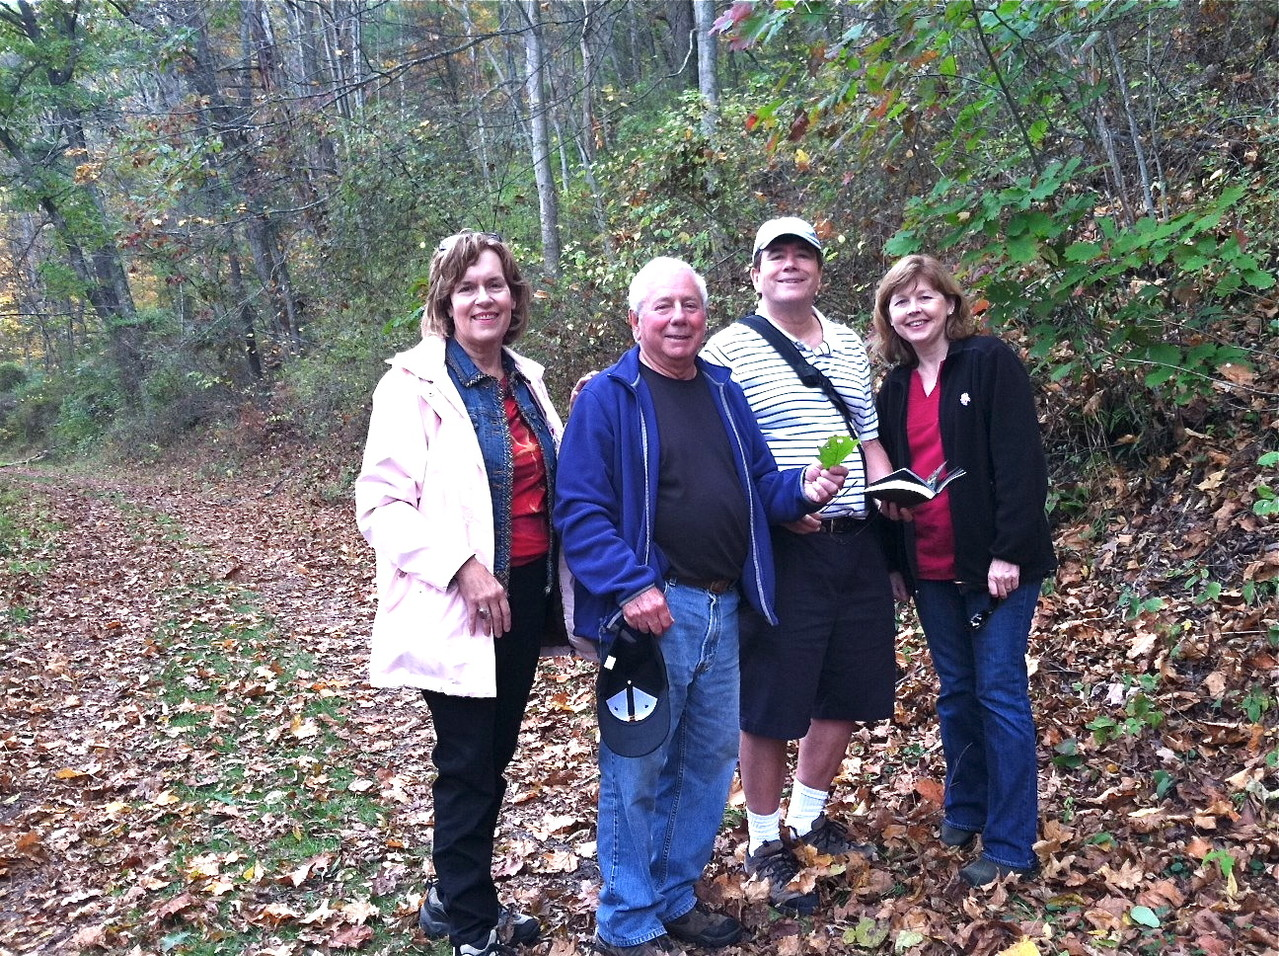 Lorraine, Don, John, & Barbara hiking!